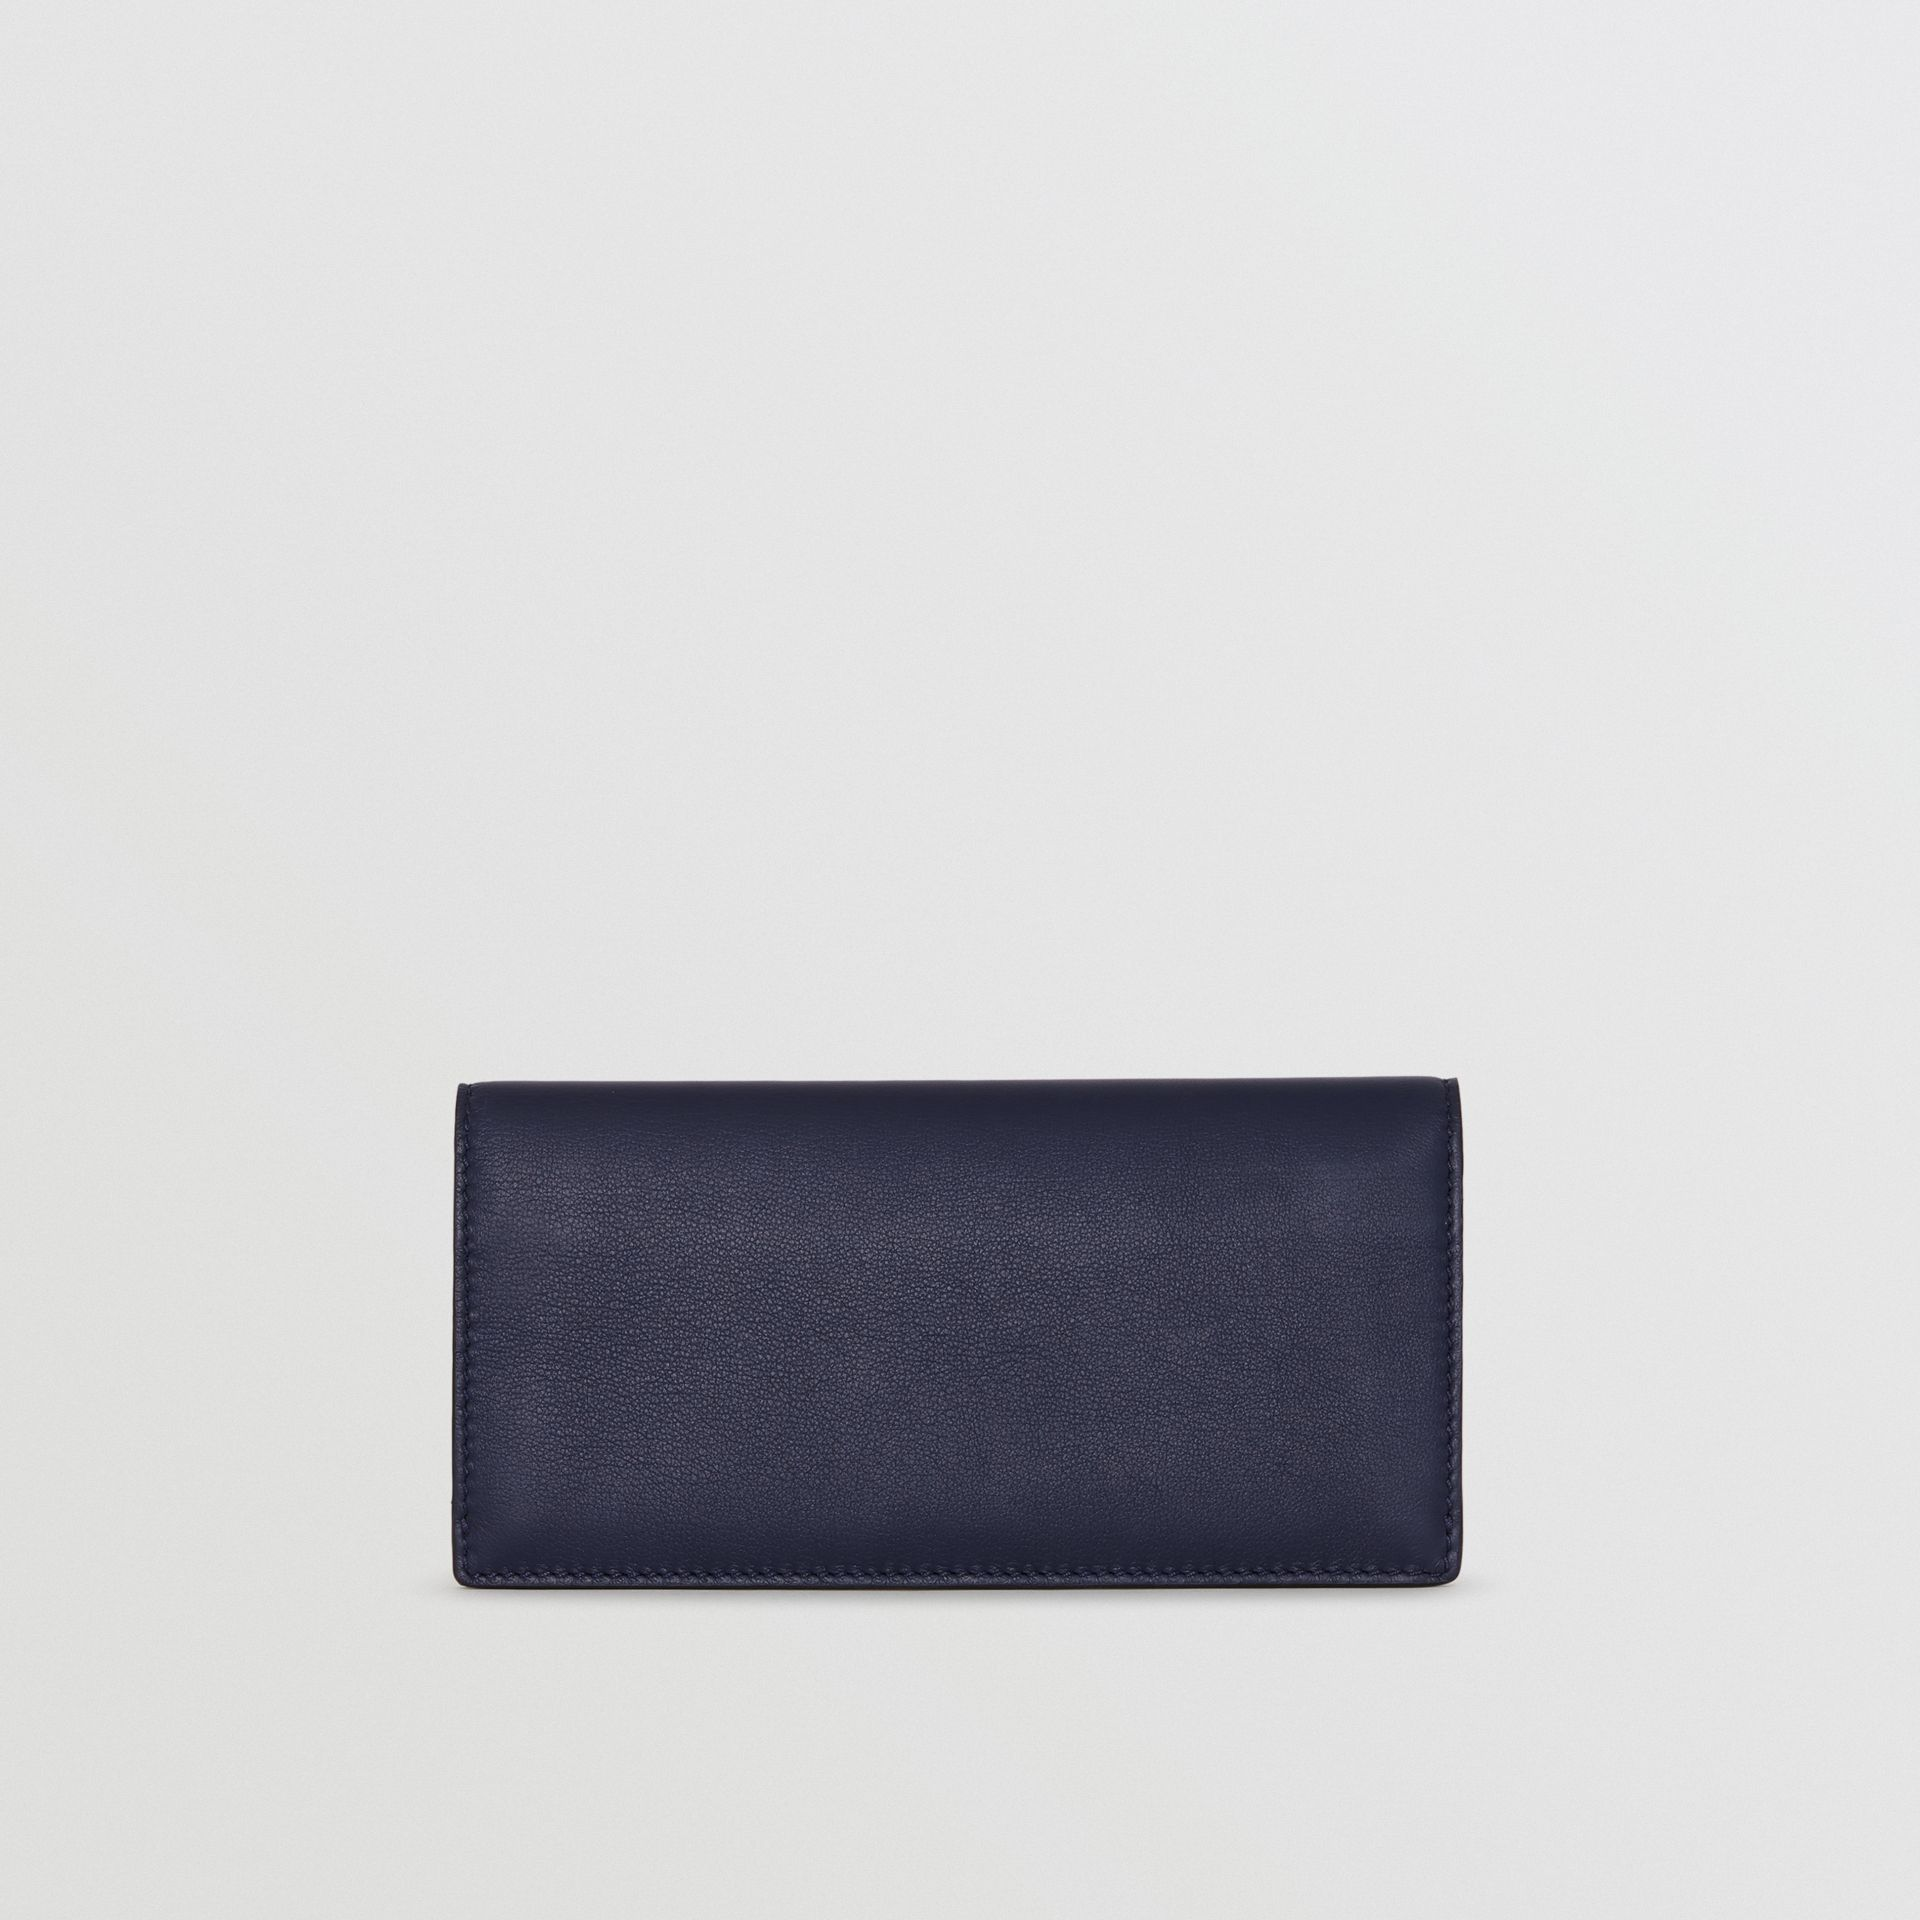 Embossed Crest Leather Continental Wallet in Regency Blue - Men | Burberry - gallery image 5